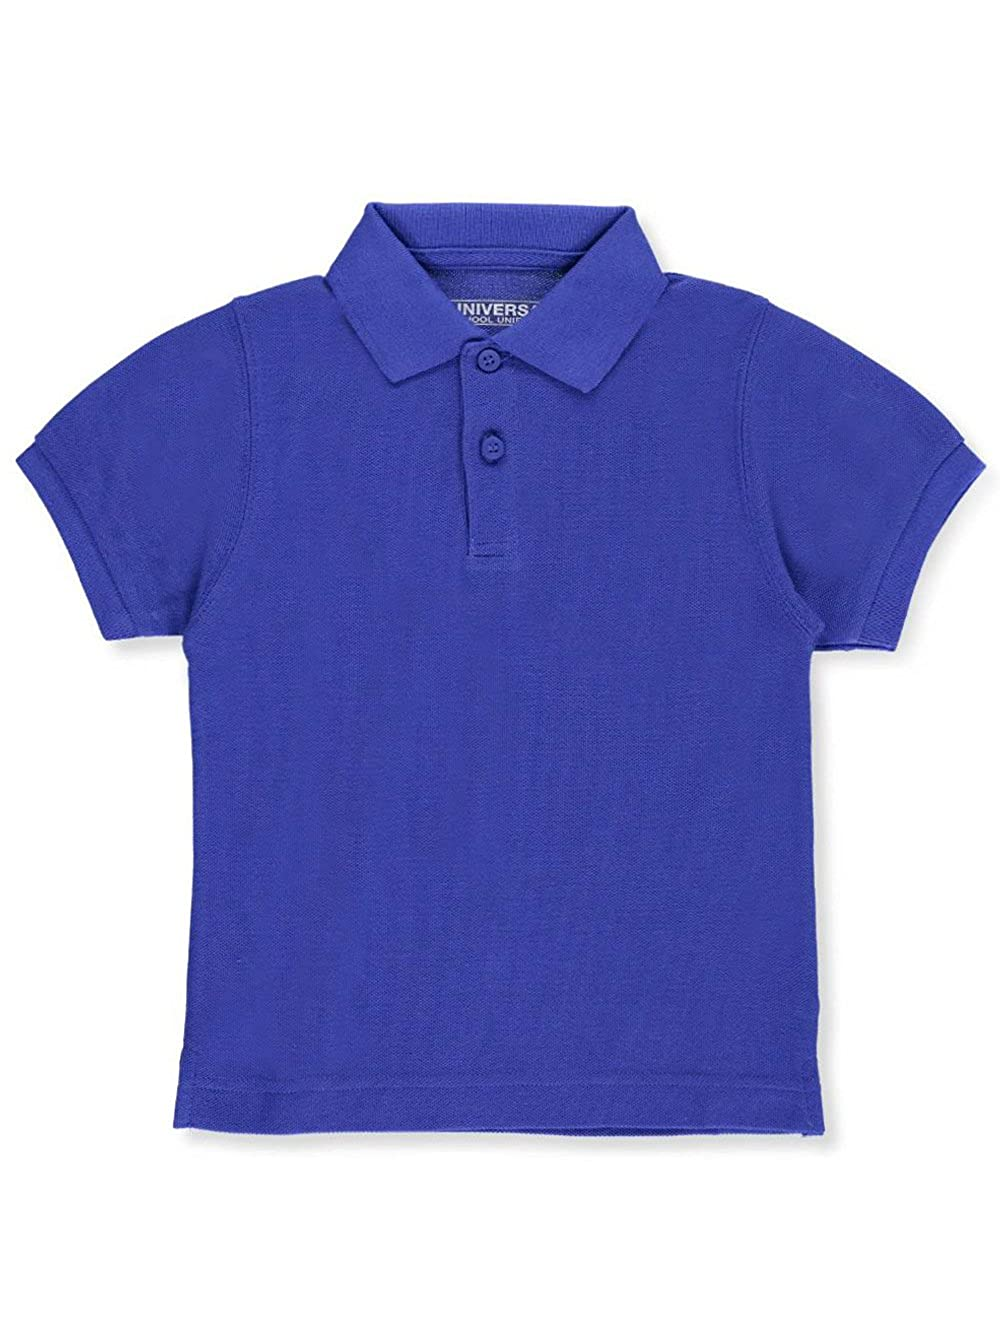 Unisex Boys Girls Short Sleeve Pique Polo Shirt w/Stain Release by Univ- Sku:Staniu838ROB2T; Color:ROYAL BLUE; Size:2T 2T Universal